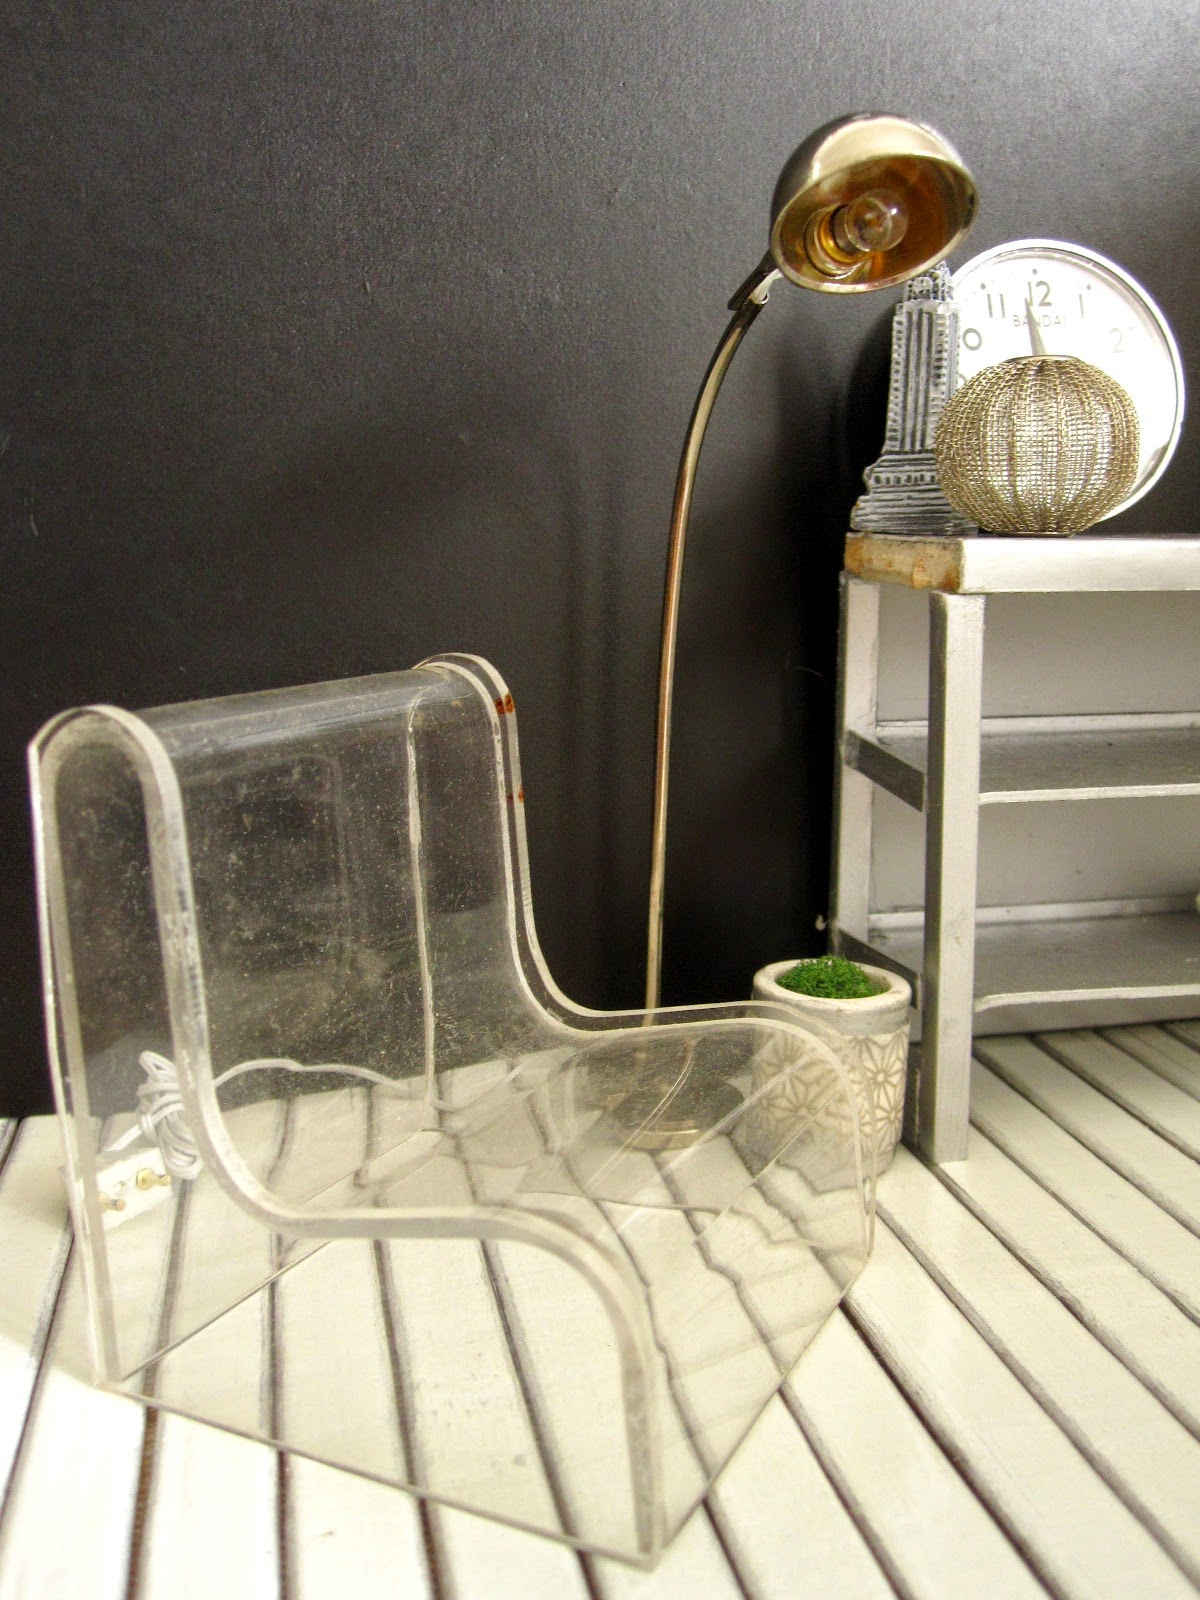 Corner of a modern dolls' house miniature interiors shop, with a clear perspex lounge chair, a silver floor lamp and a grey industrial bench on display.